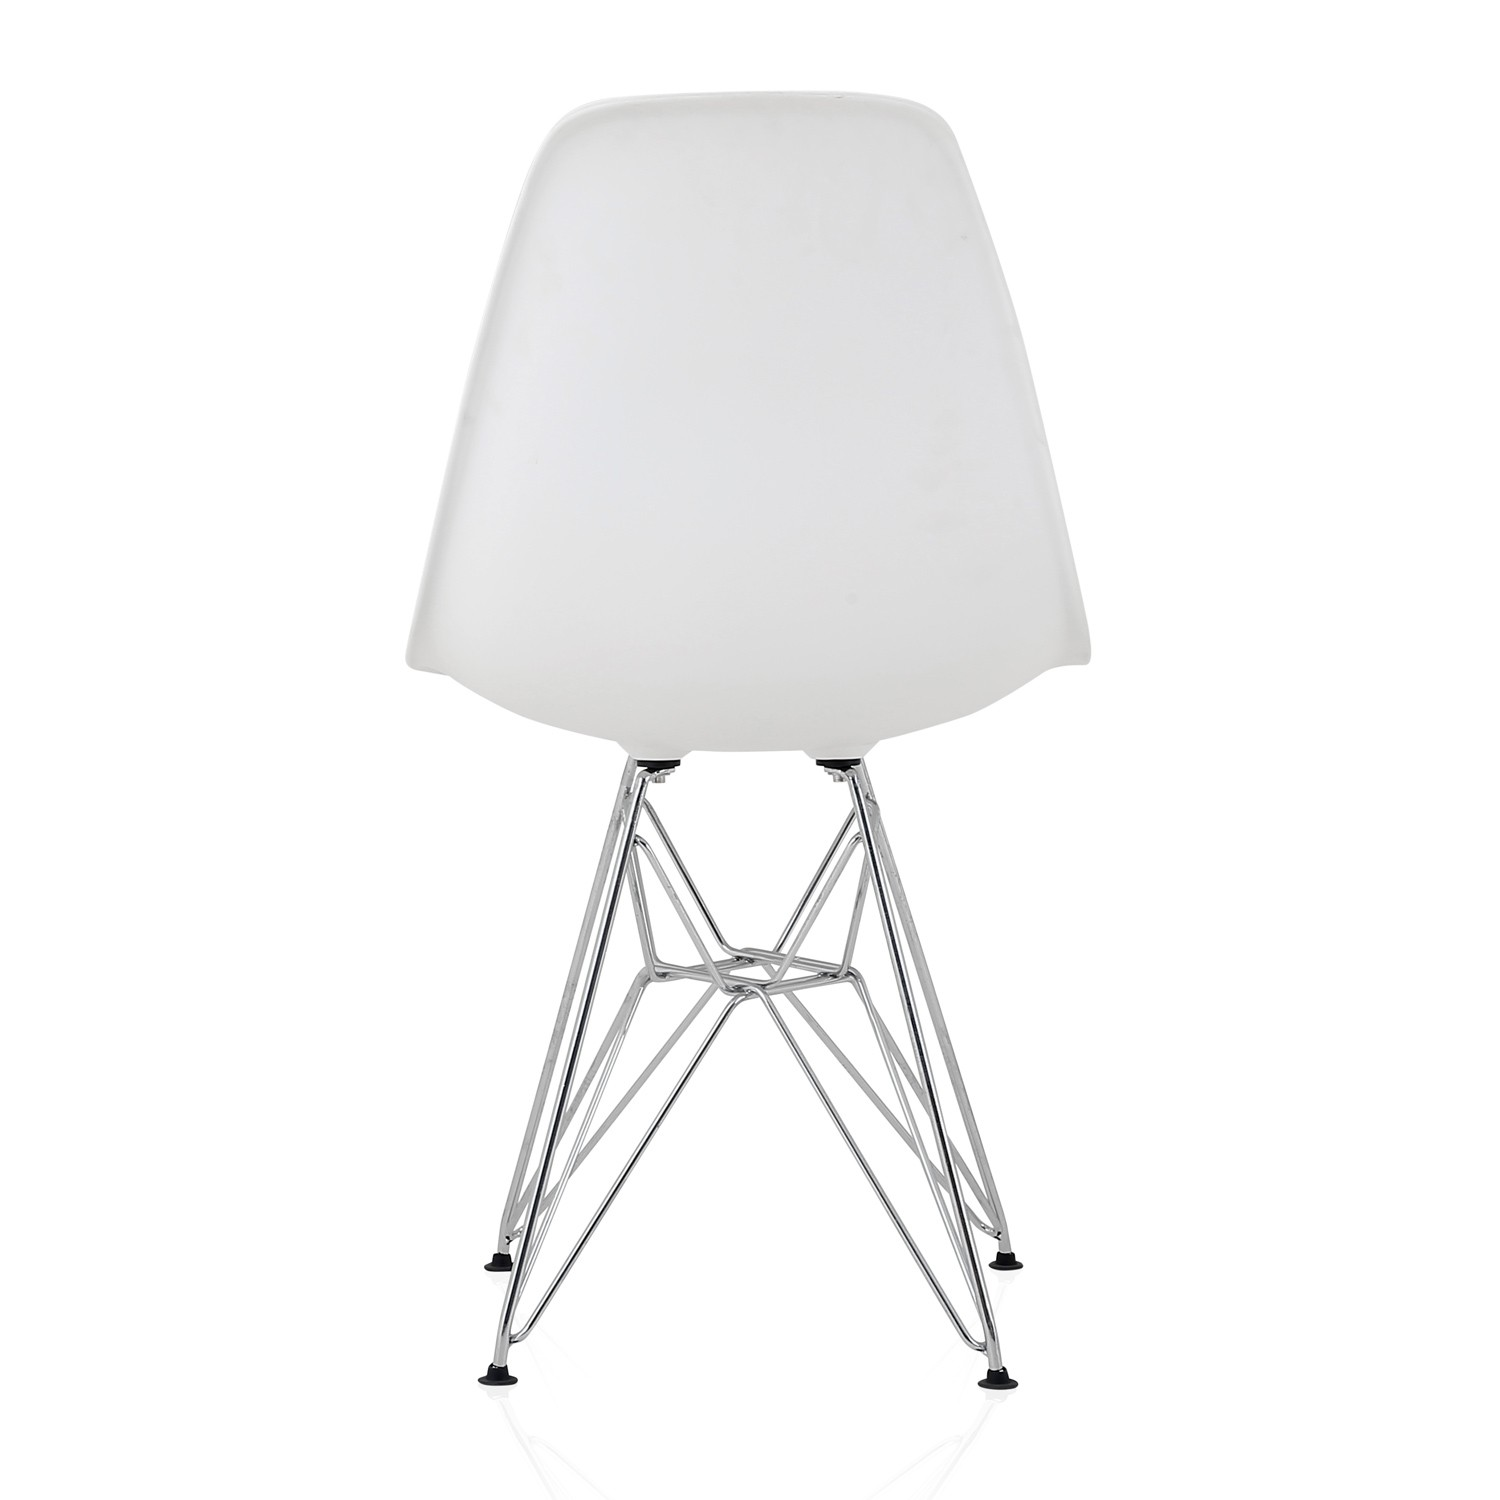 plastic chairs with steel legs card table and chair set menards eames style dsr molded white dining shell